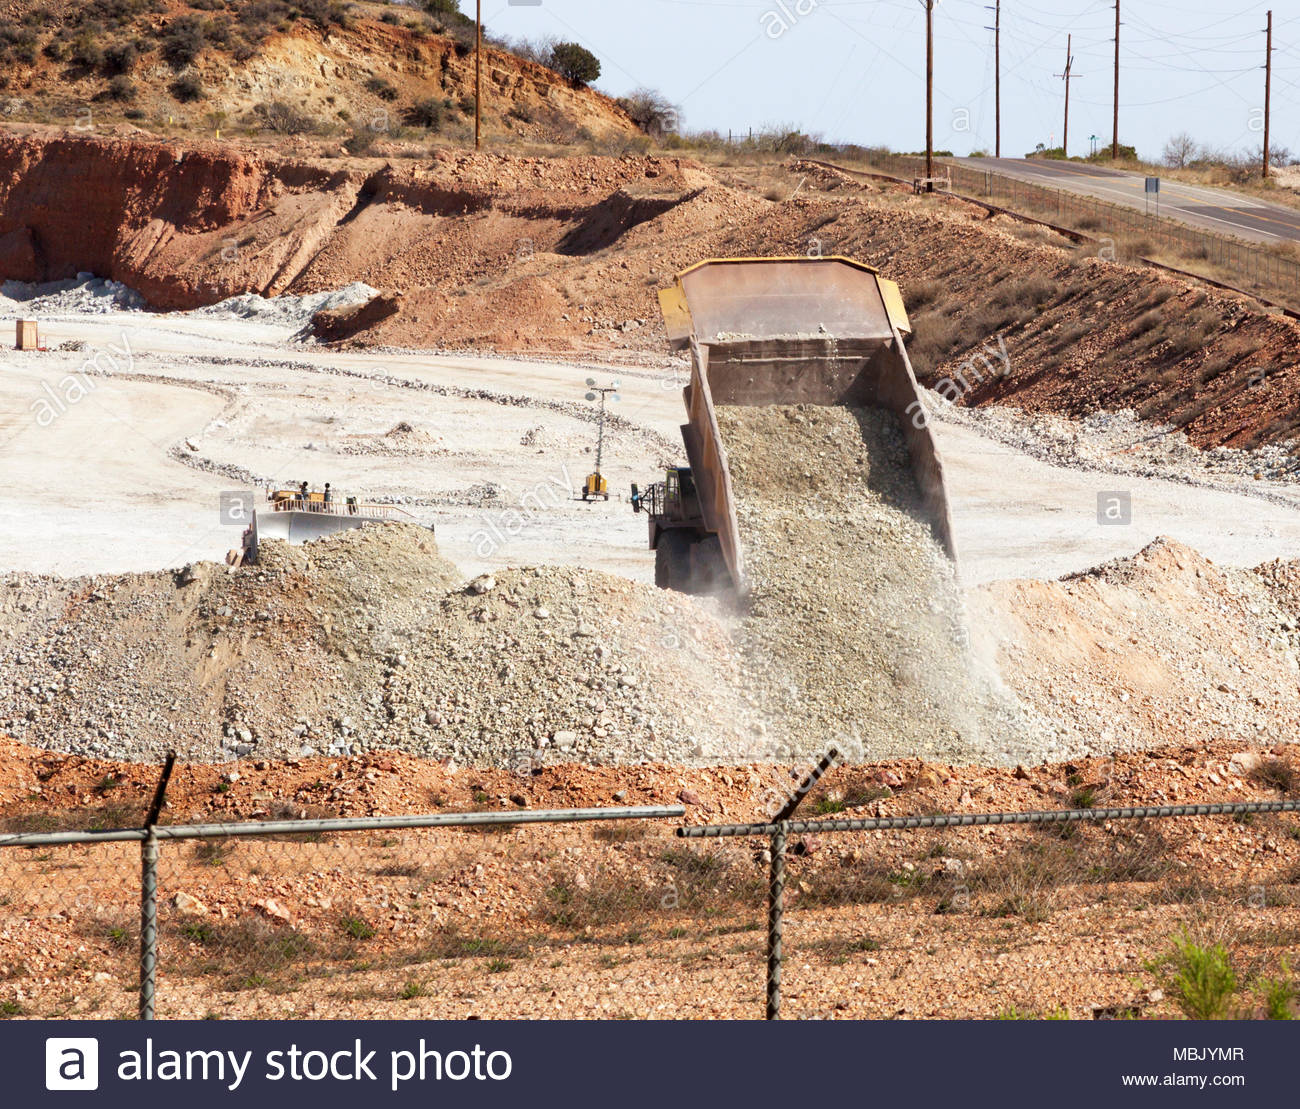 Caterpillar 777D mine haul truck, 100 tons payload capacity, dumping with Caterpillar D11R dozer pushing at left at mine in Arizona, USA - Stock Image